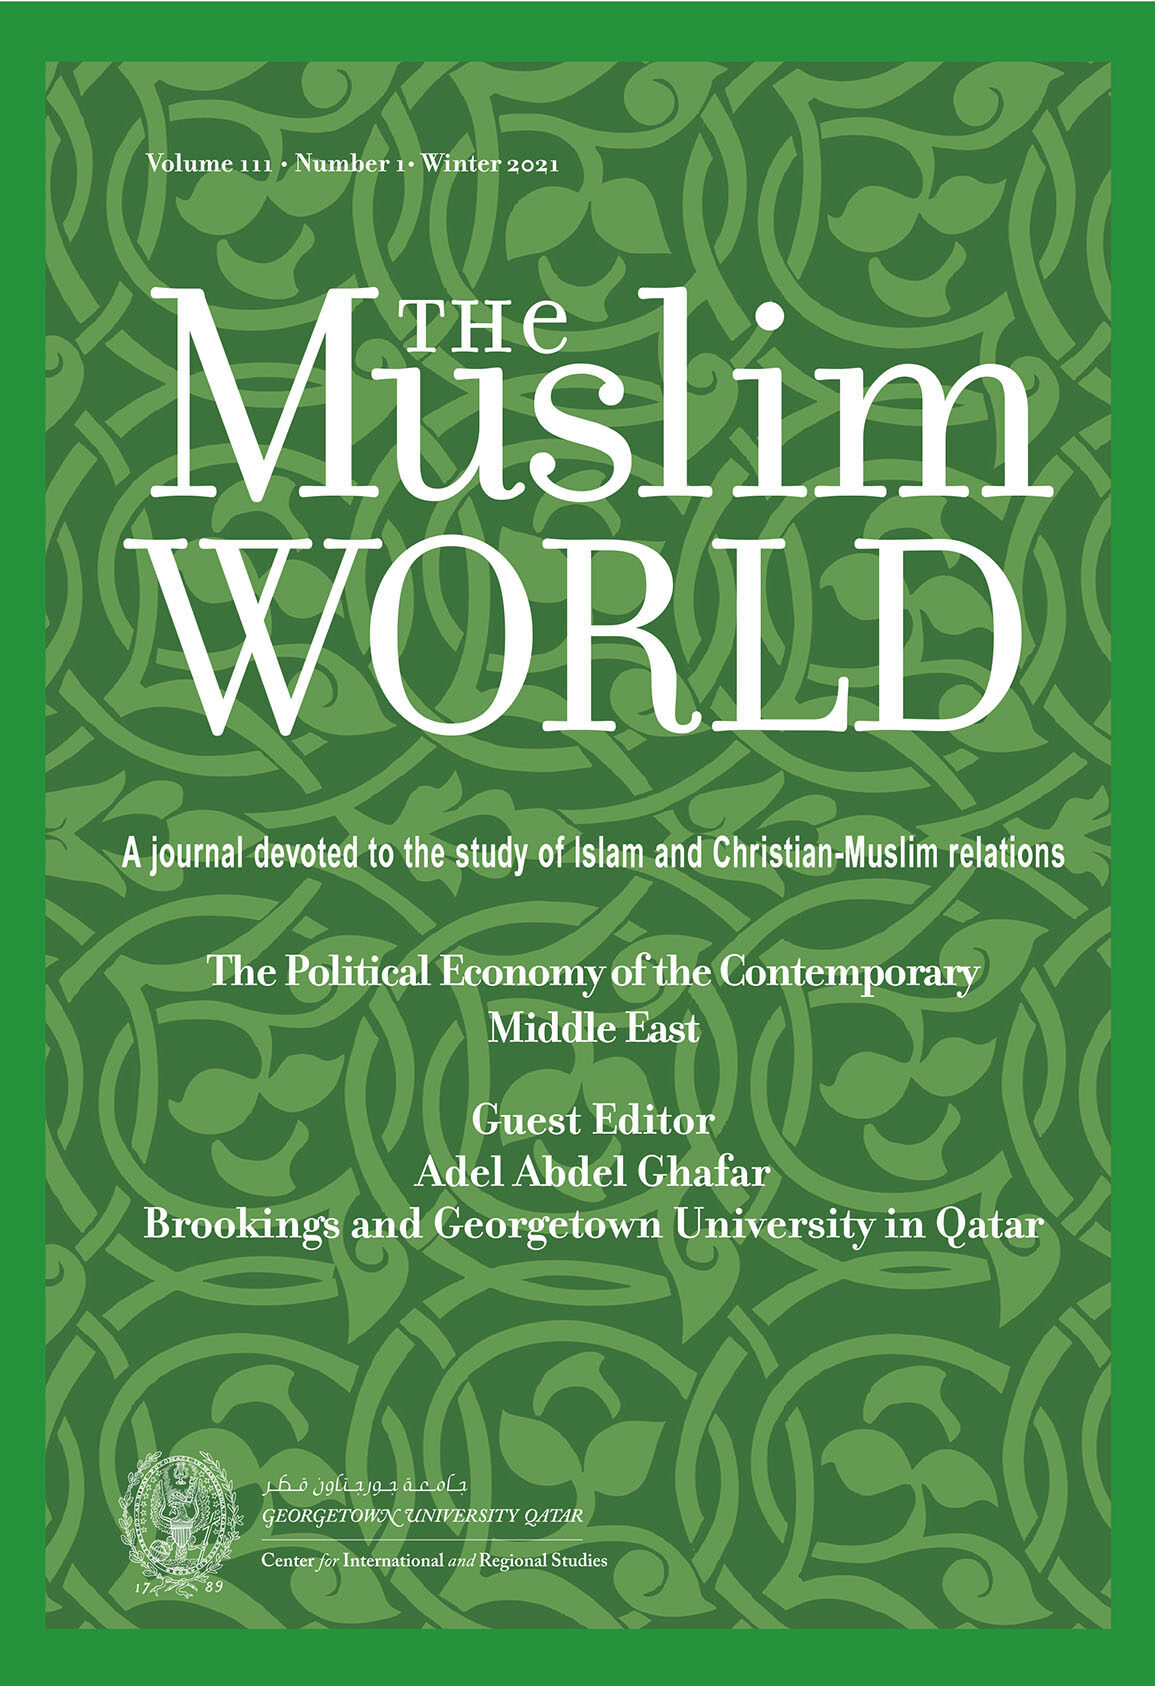 CIRS Special Issue of the Muslim World Journal